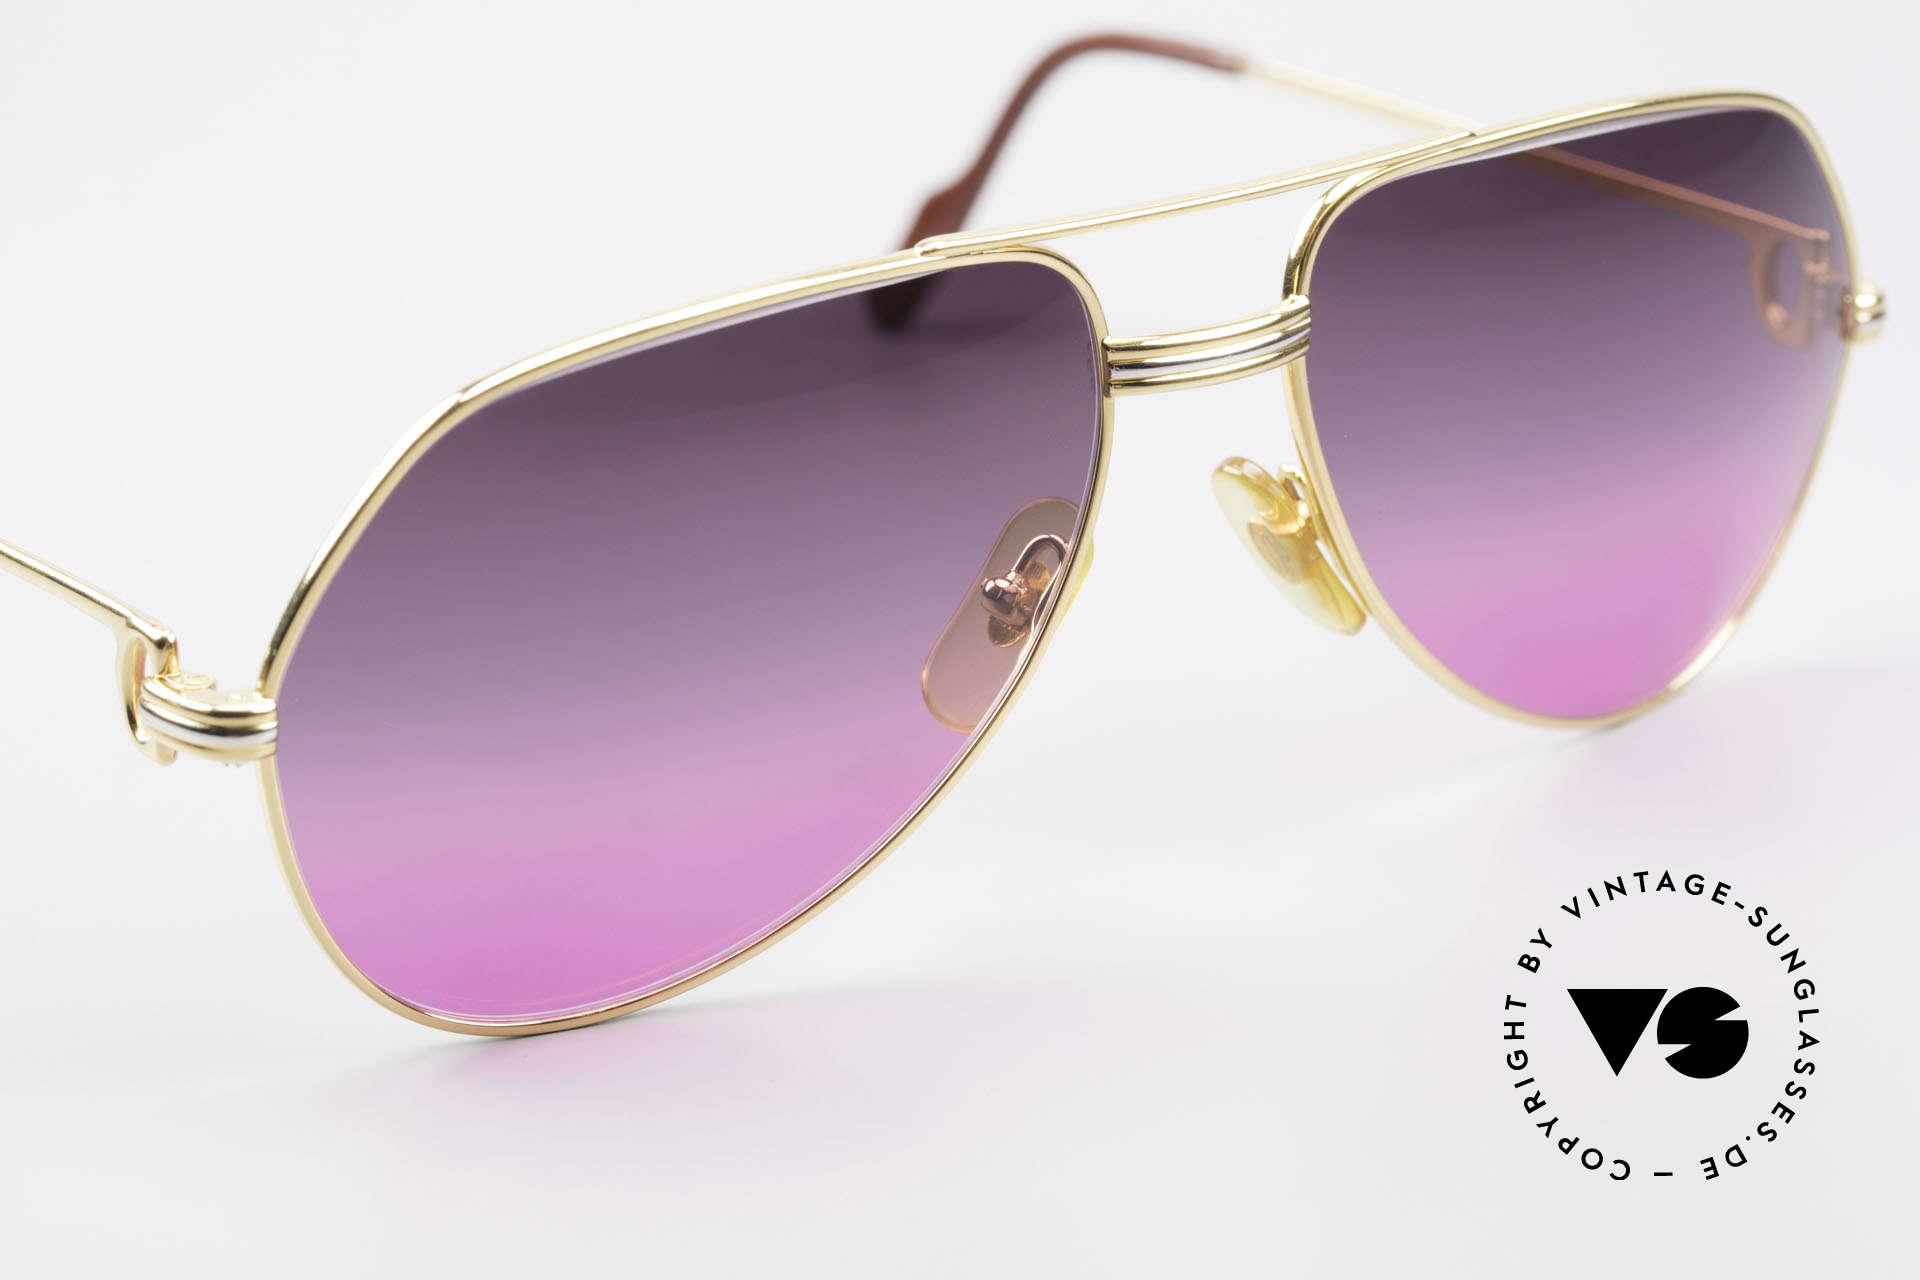 Cartier Vendome LC - M 80's Sunglasses Aviator Luxury, 2nd hand model, but in mint condition with Cartier box, Made for Men and Women